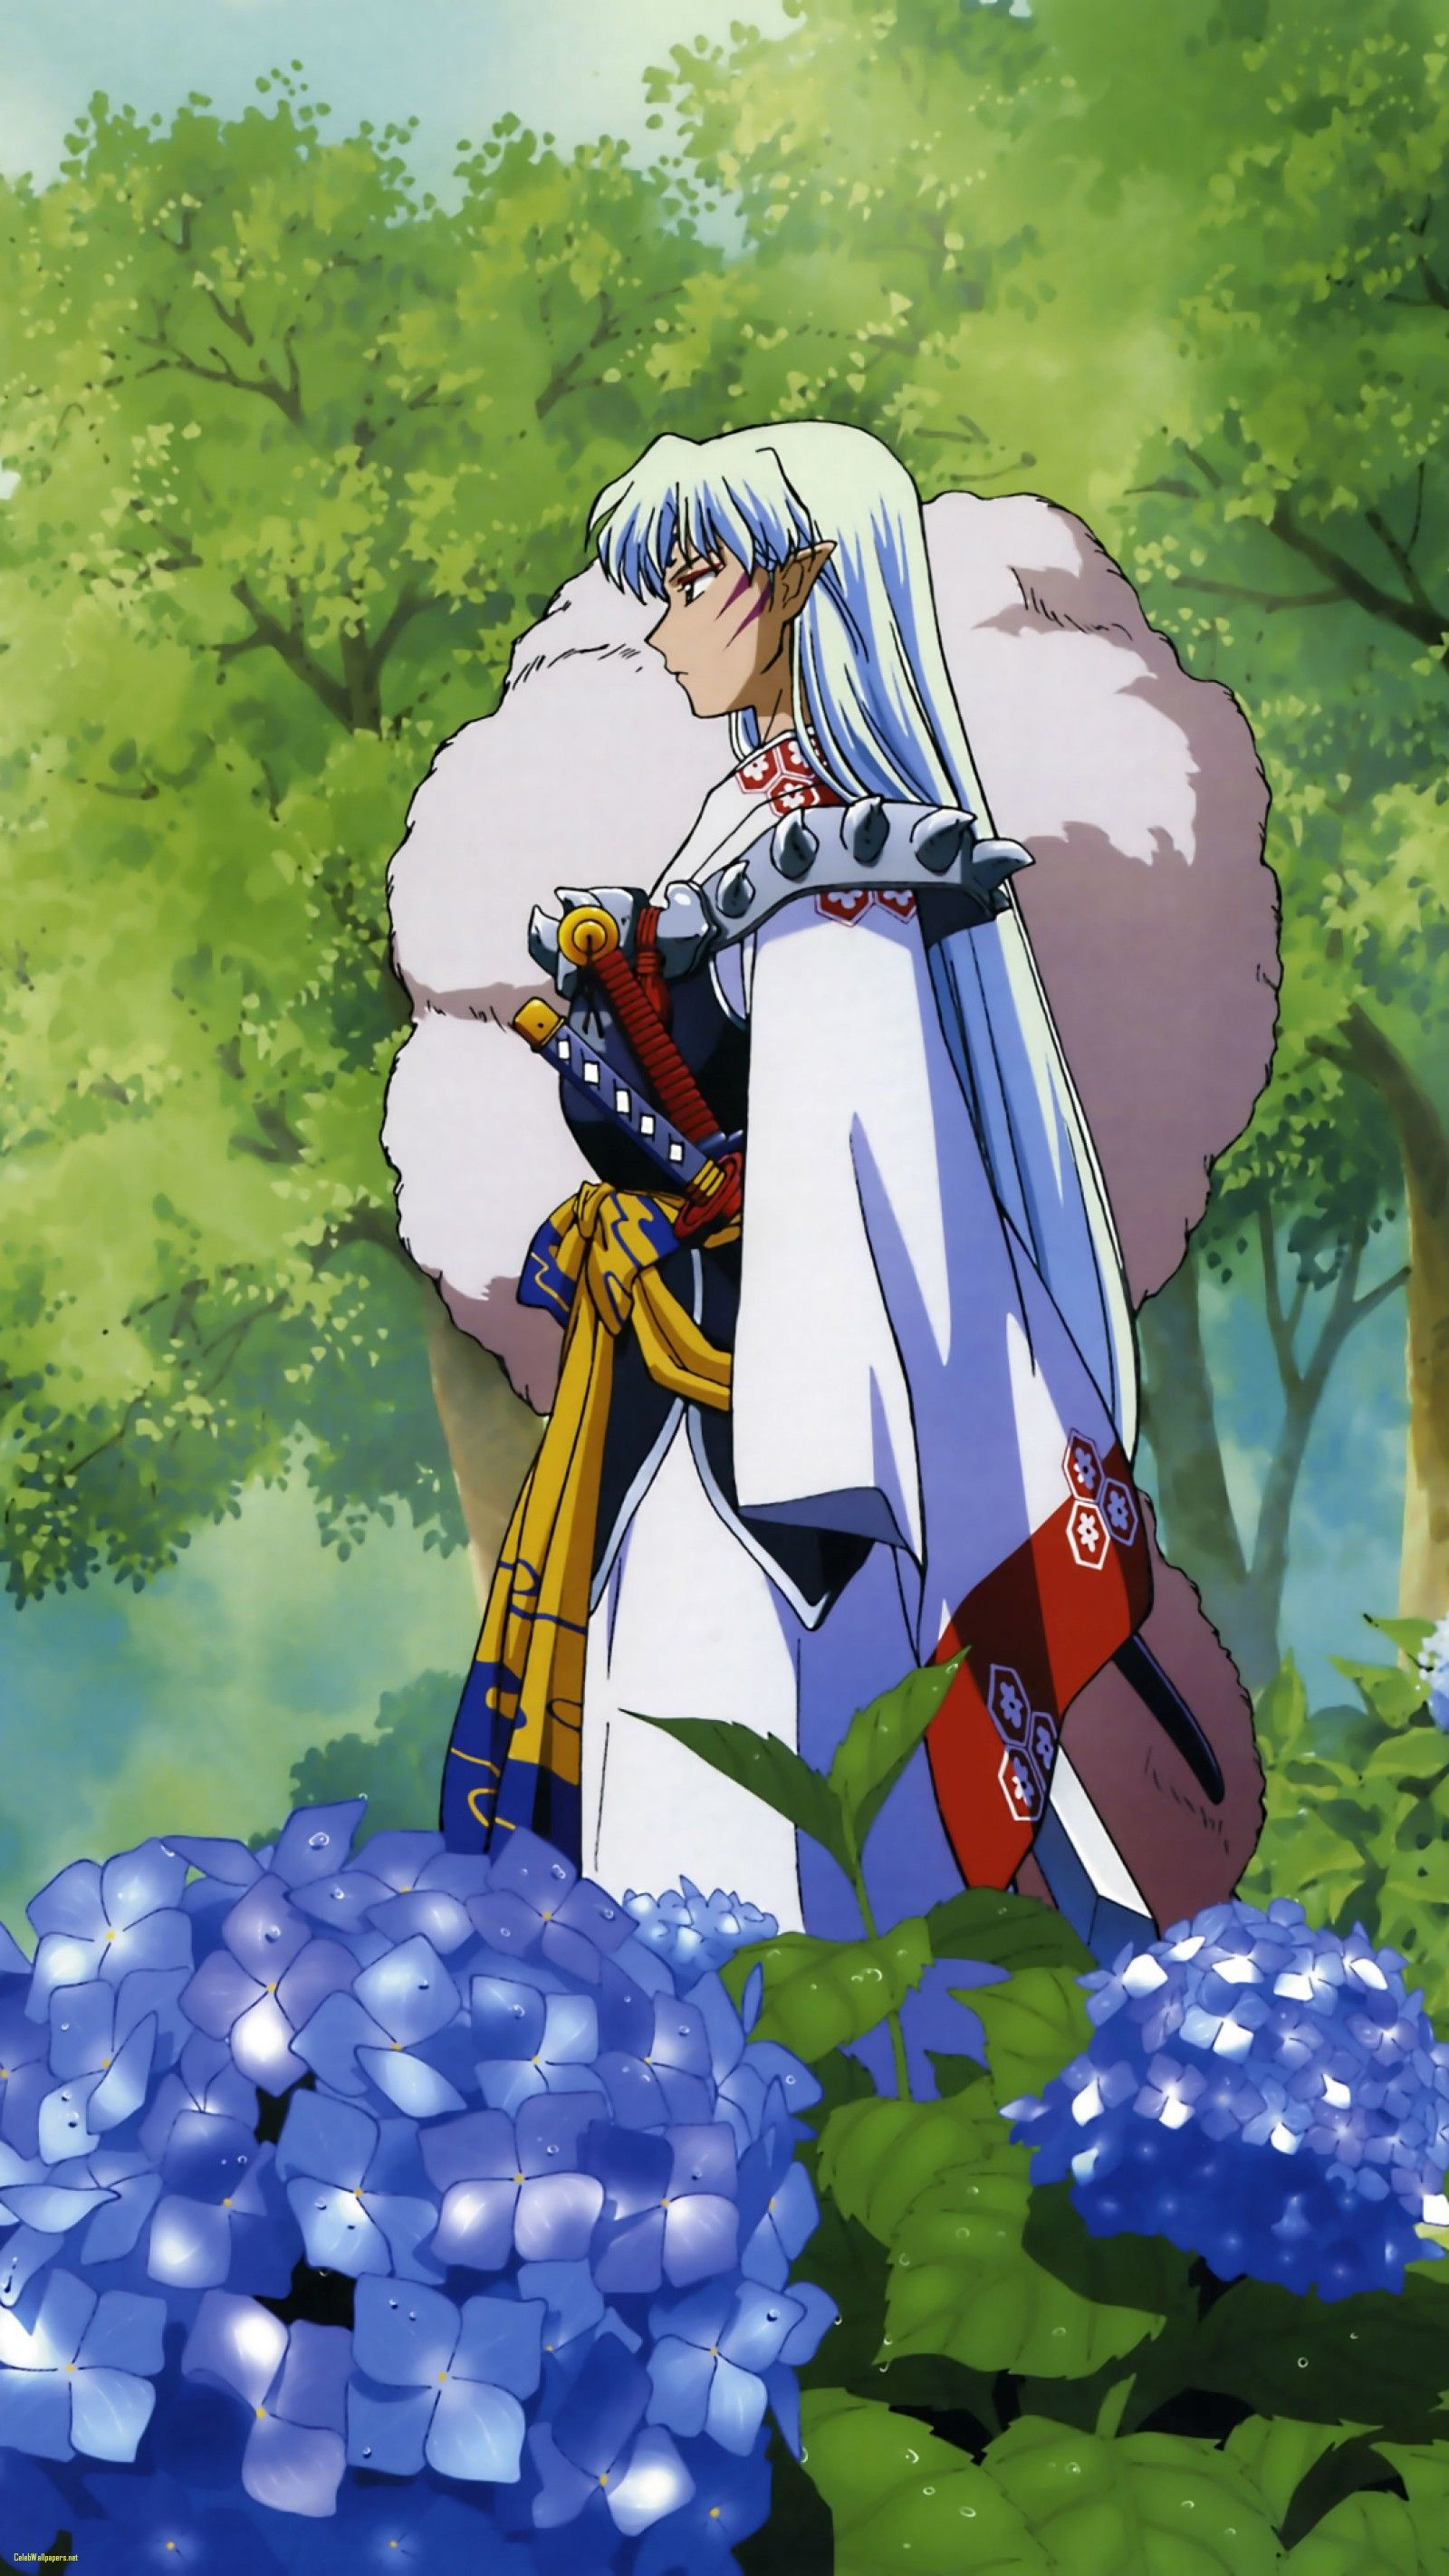 Inuyasha Iphone Wallpapers Top Free Inuyasha Iphone Backgrounds Wallpaperaccess